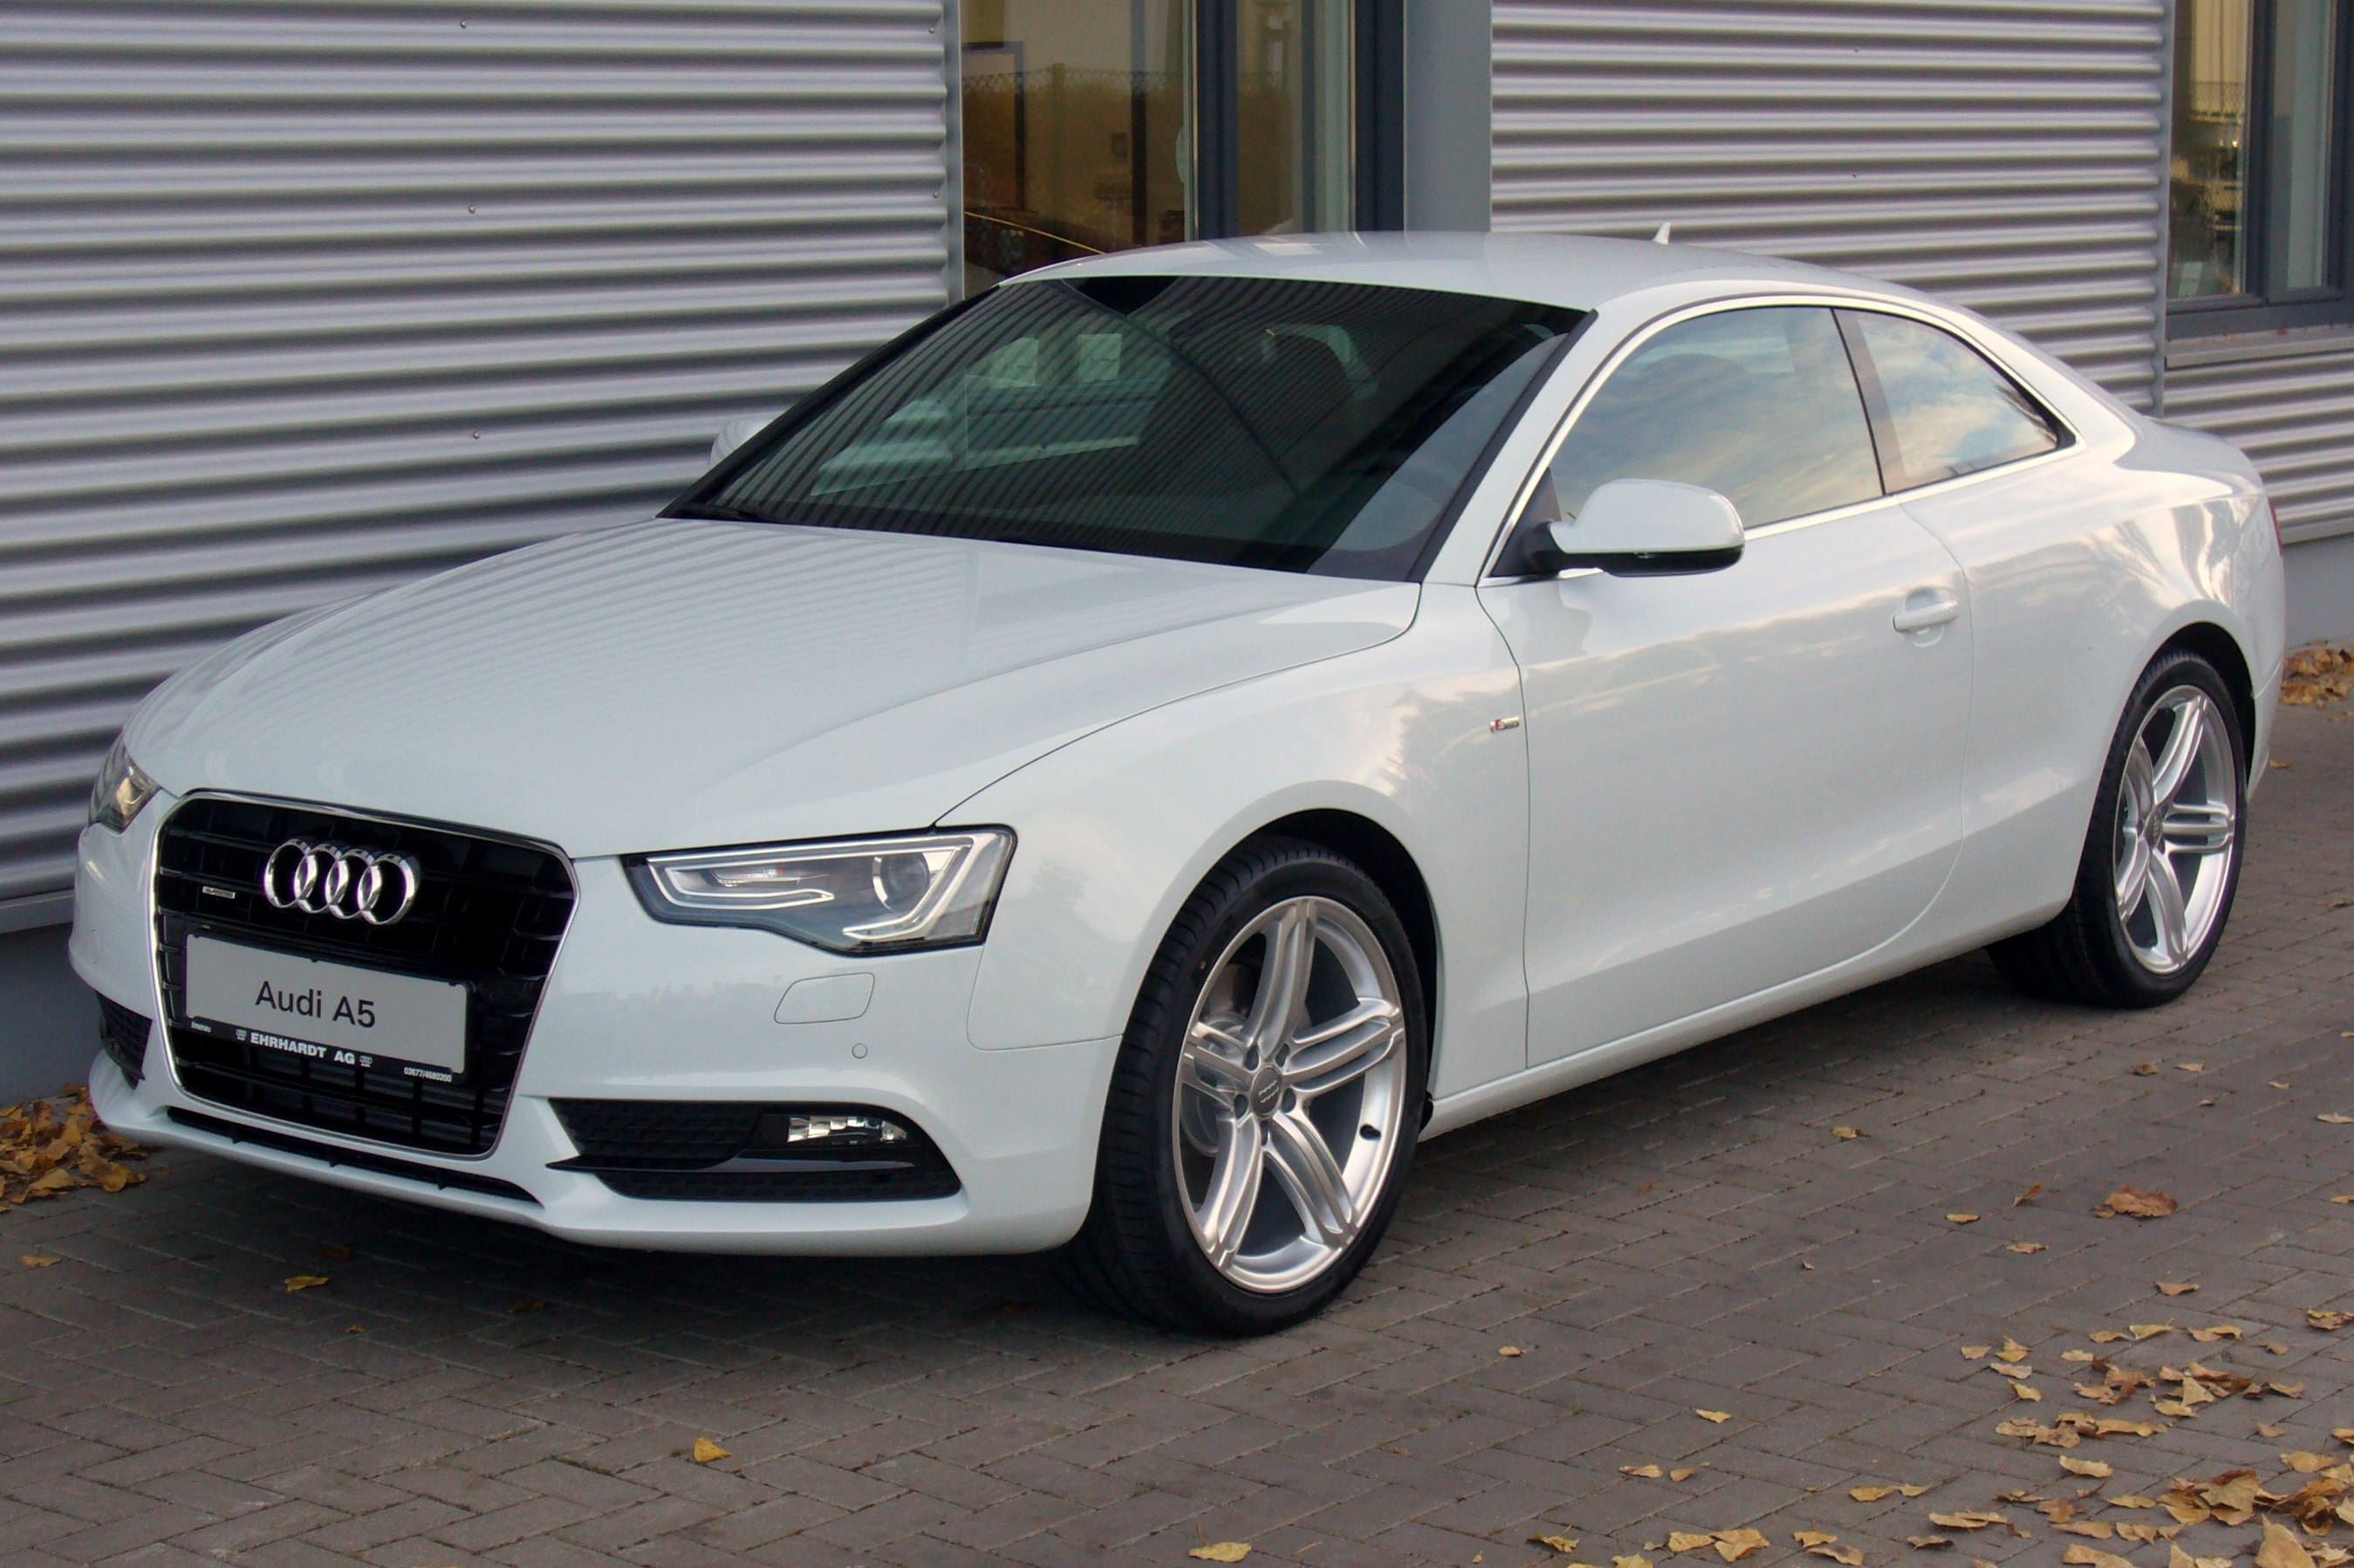 audi a5 (8t3) 2013 pictures #9